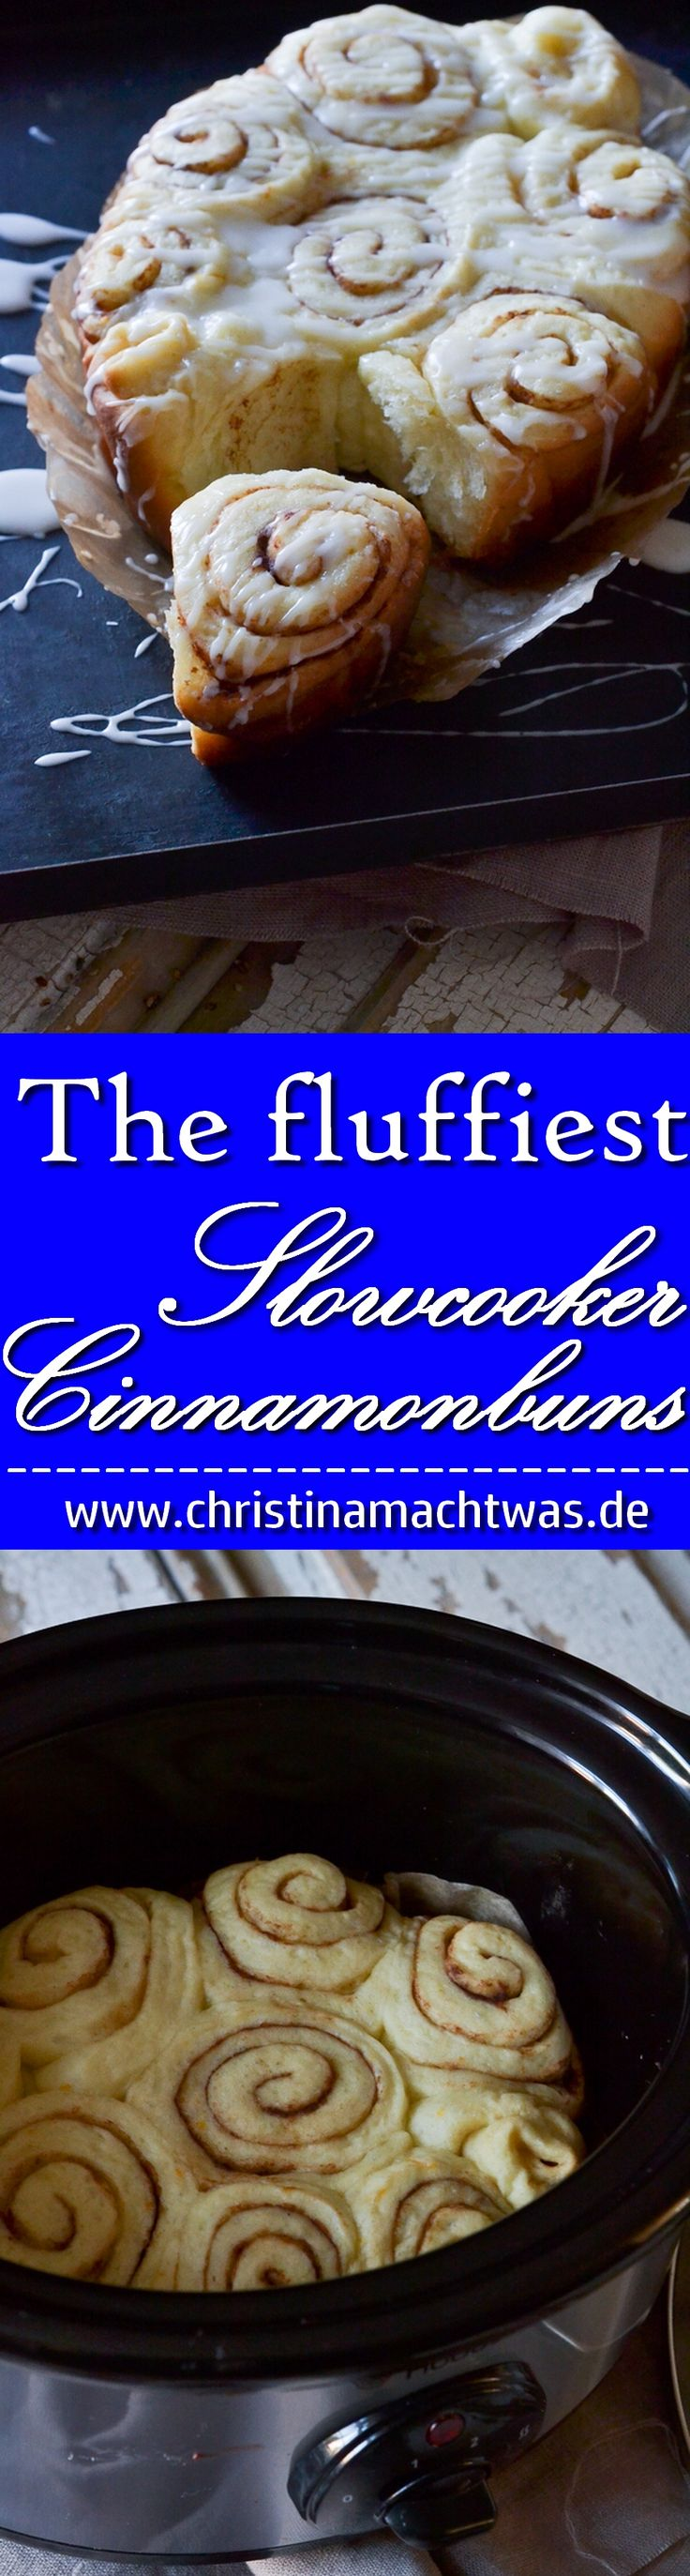 Die fluffigsten Slowcooker Zimtschnecken die ihr je essen werdet. Himmlisch wie eine Wolke und einfach nur aromatisch. _____________________________ The best and fluffiest Slowcooker Cinnamonrolls / Cinnamonbuns you'll ever eat.